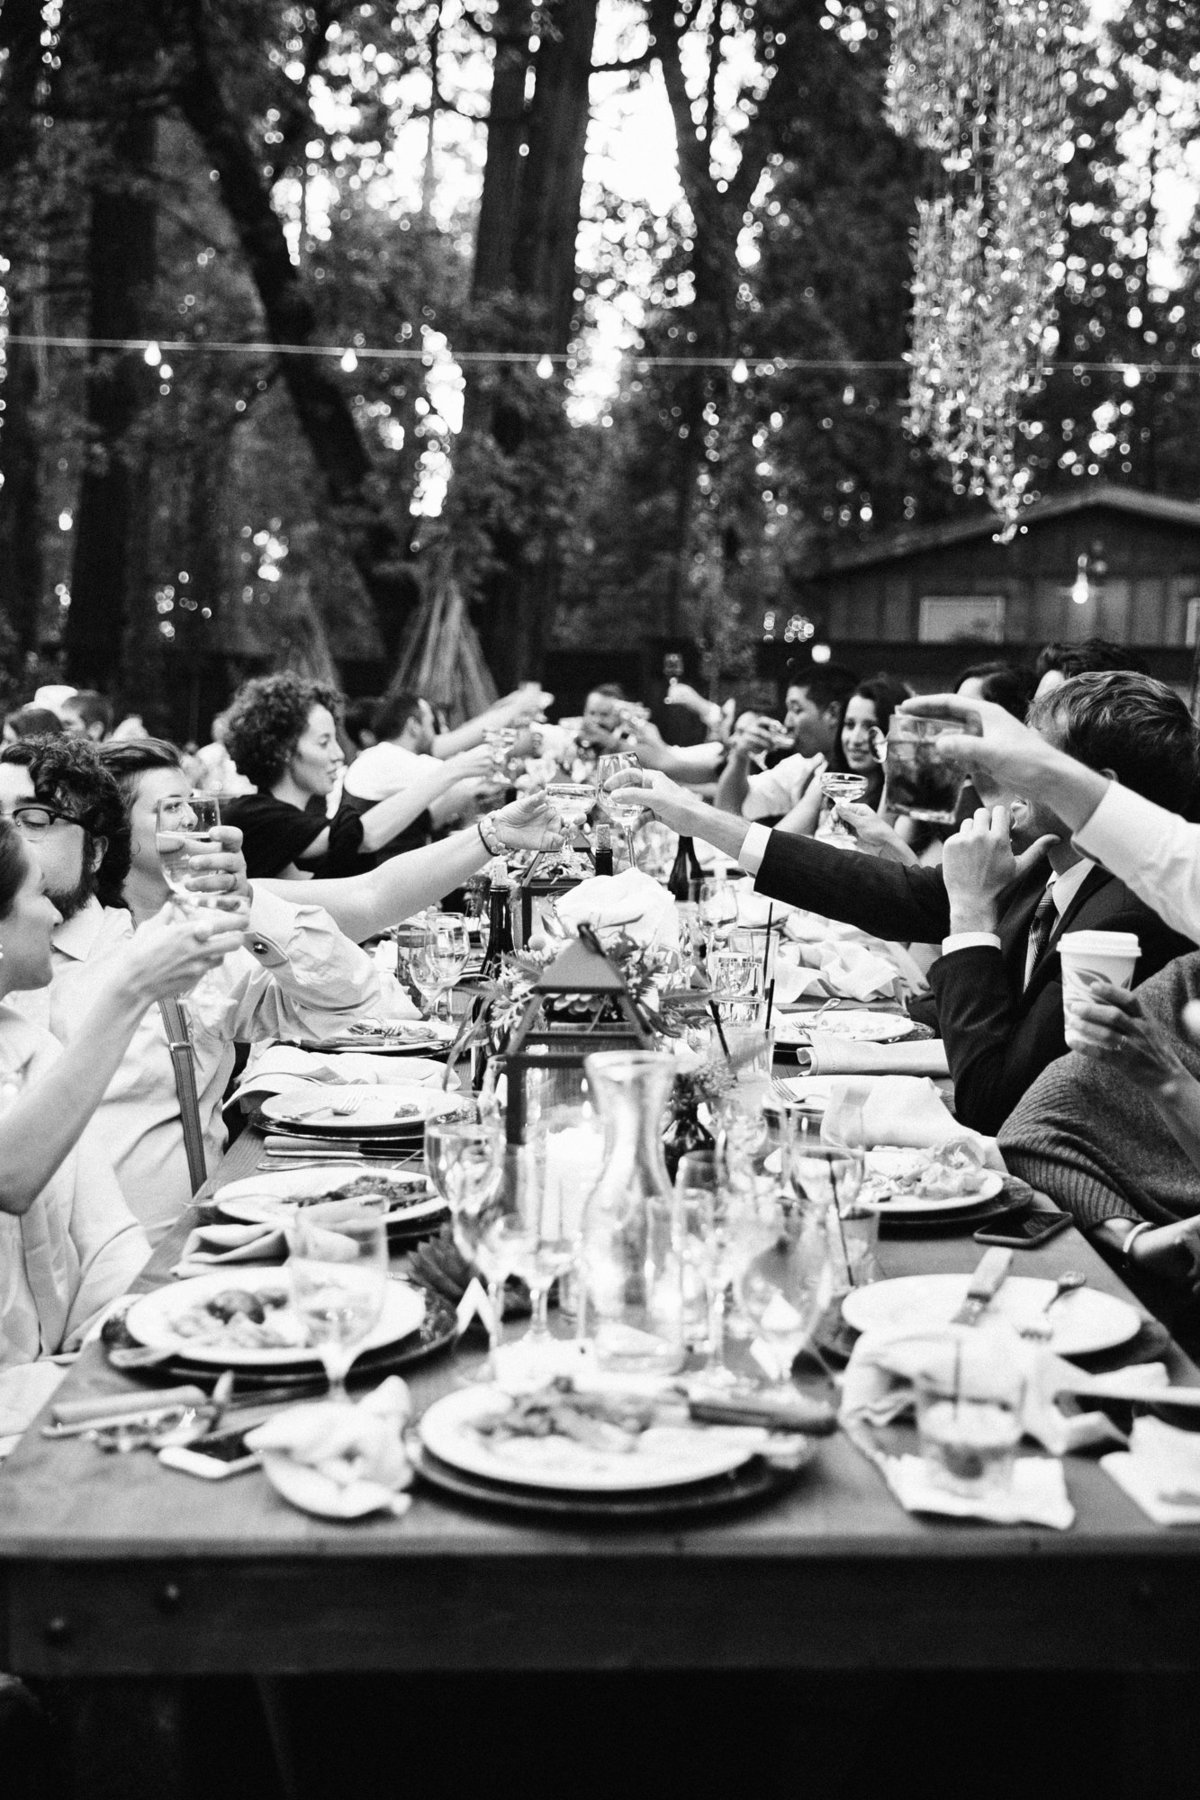 evergreen_lodge_yosemite_wedding_054